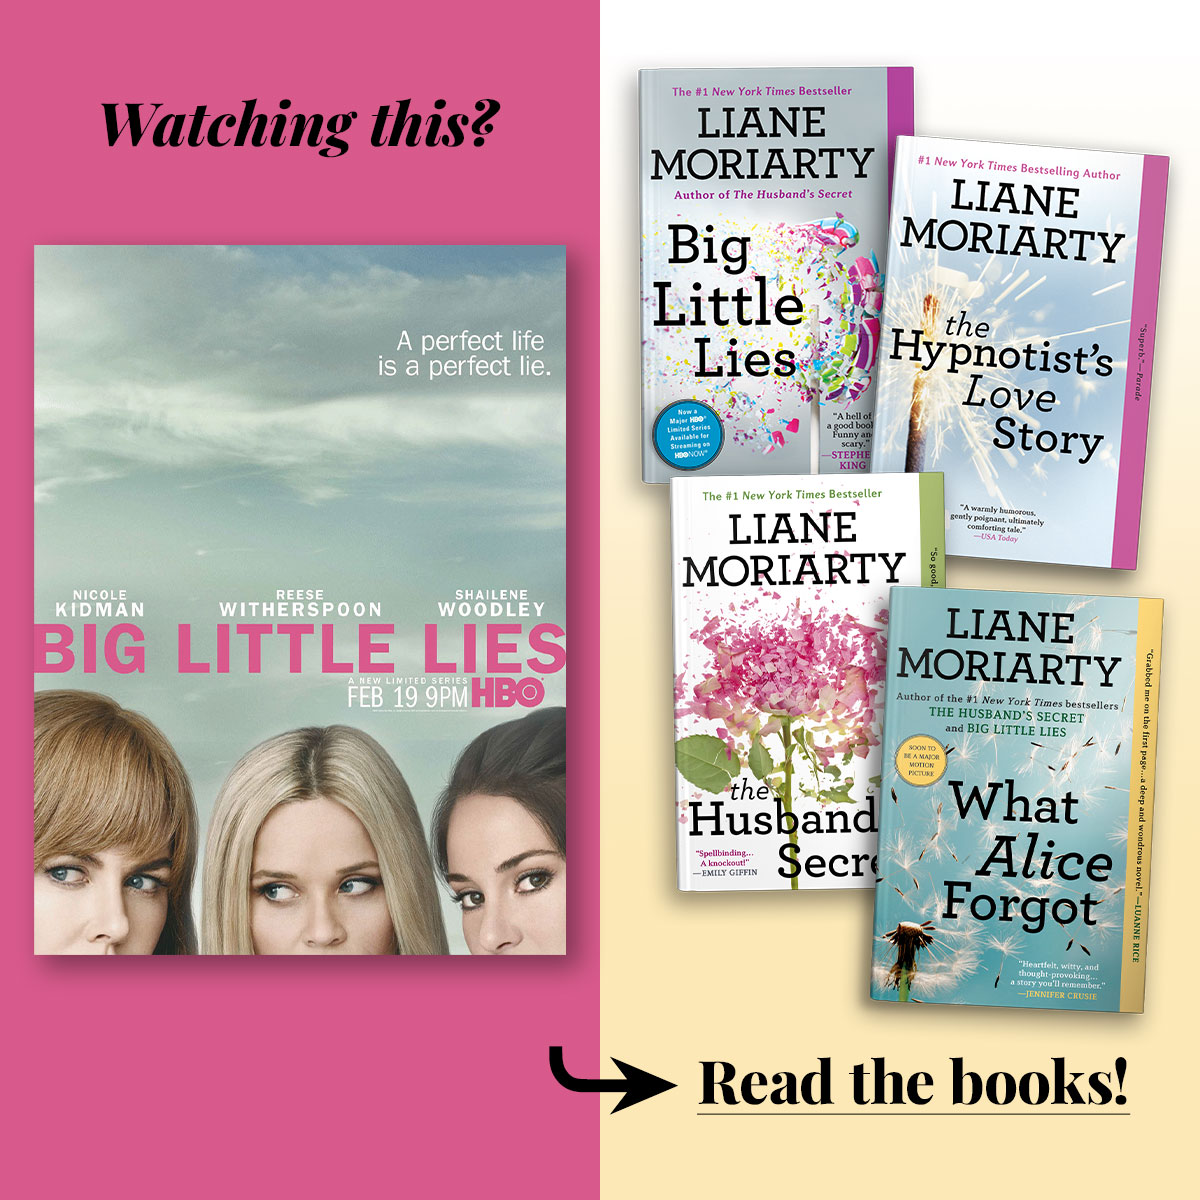 Big Little Lies by Liane Moriarty • Series streaming on HBO